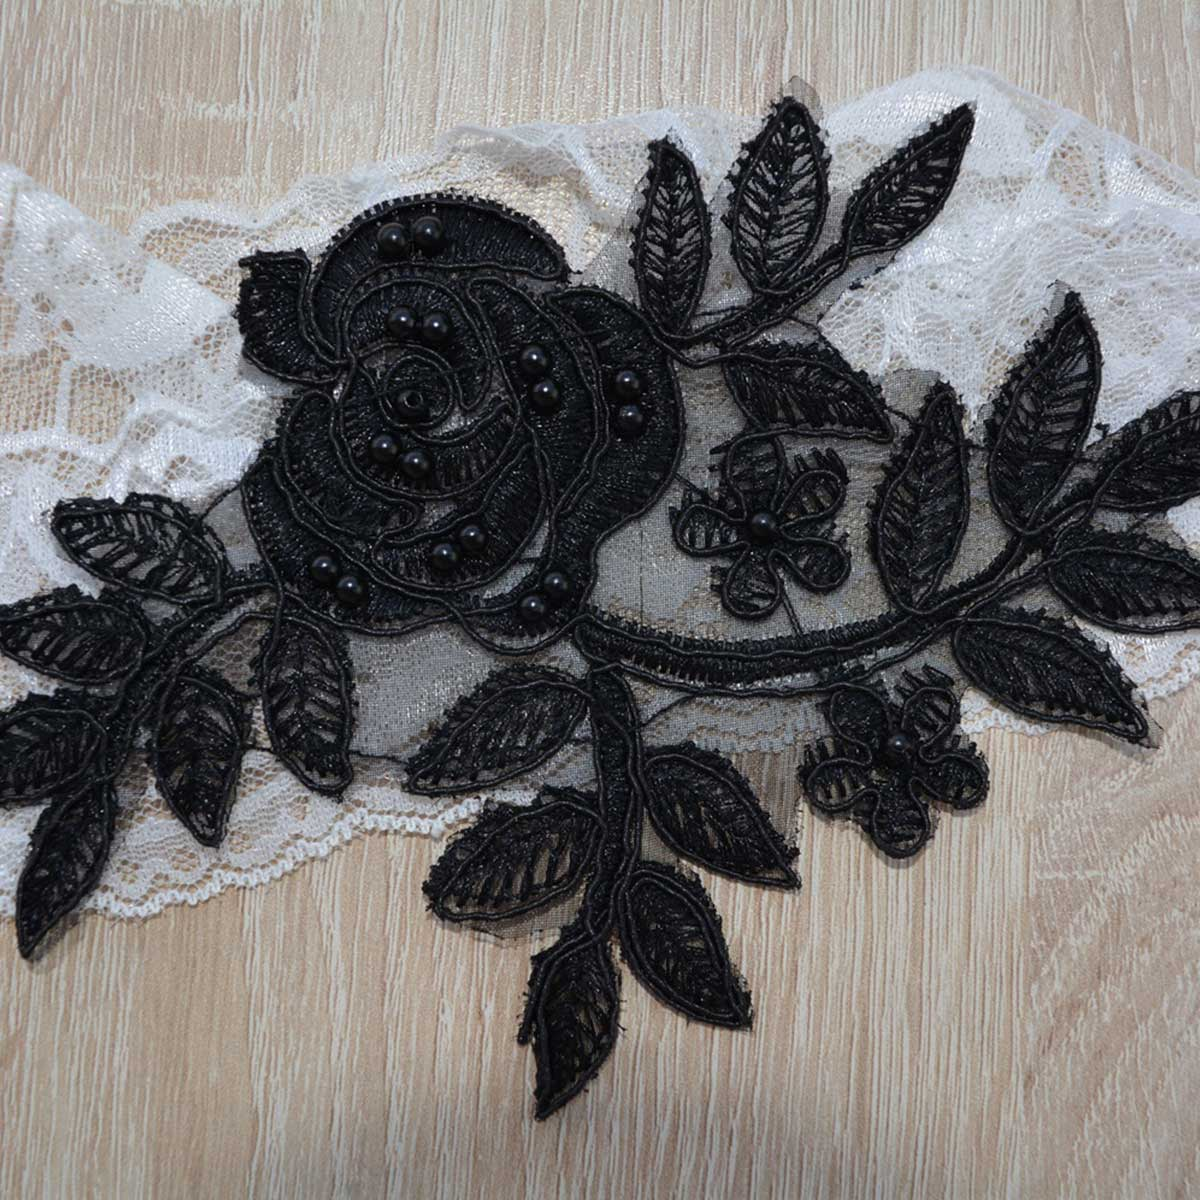 White Bridal Garter With Black Flower Lace Applique & Pearls